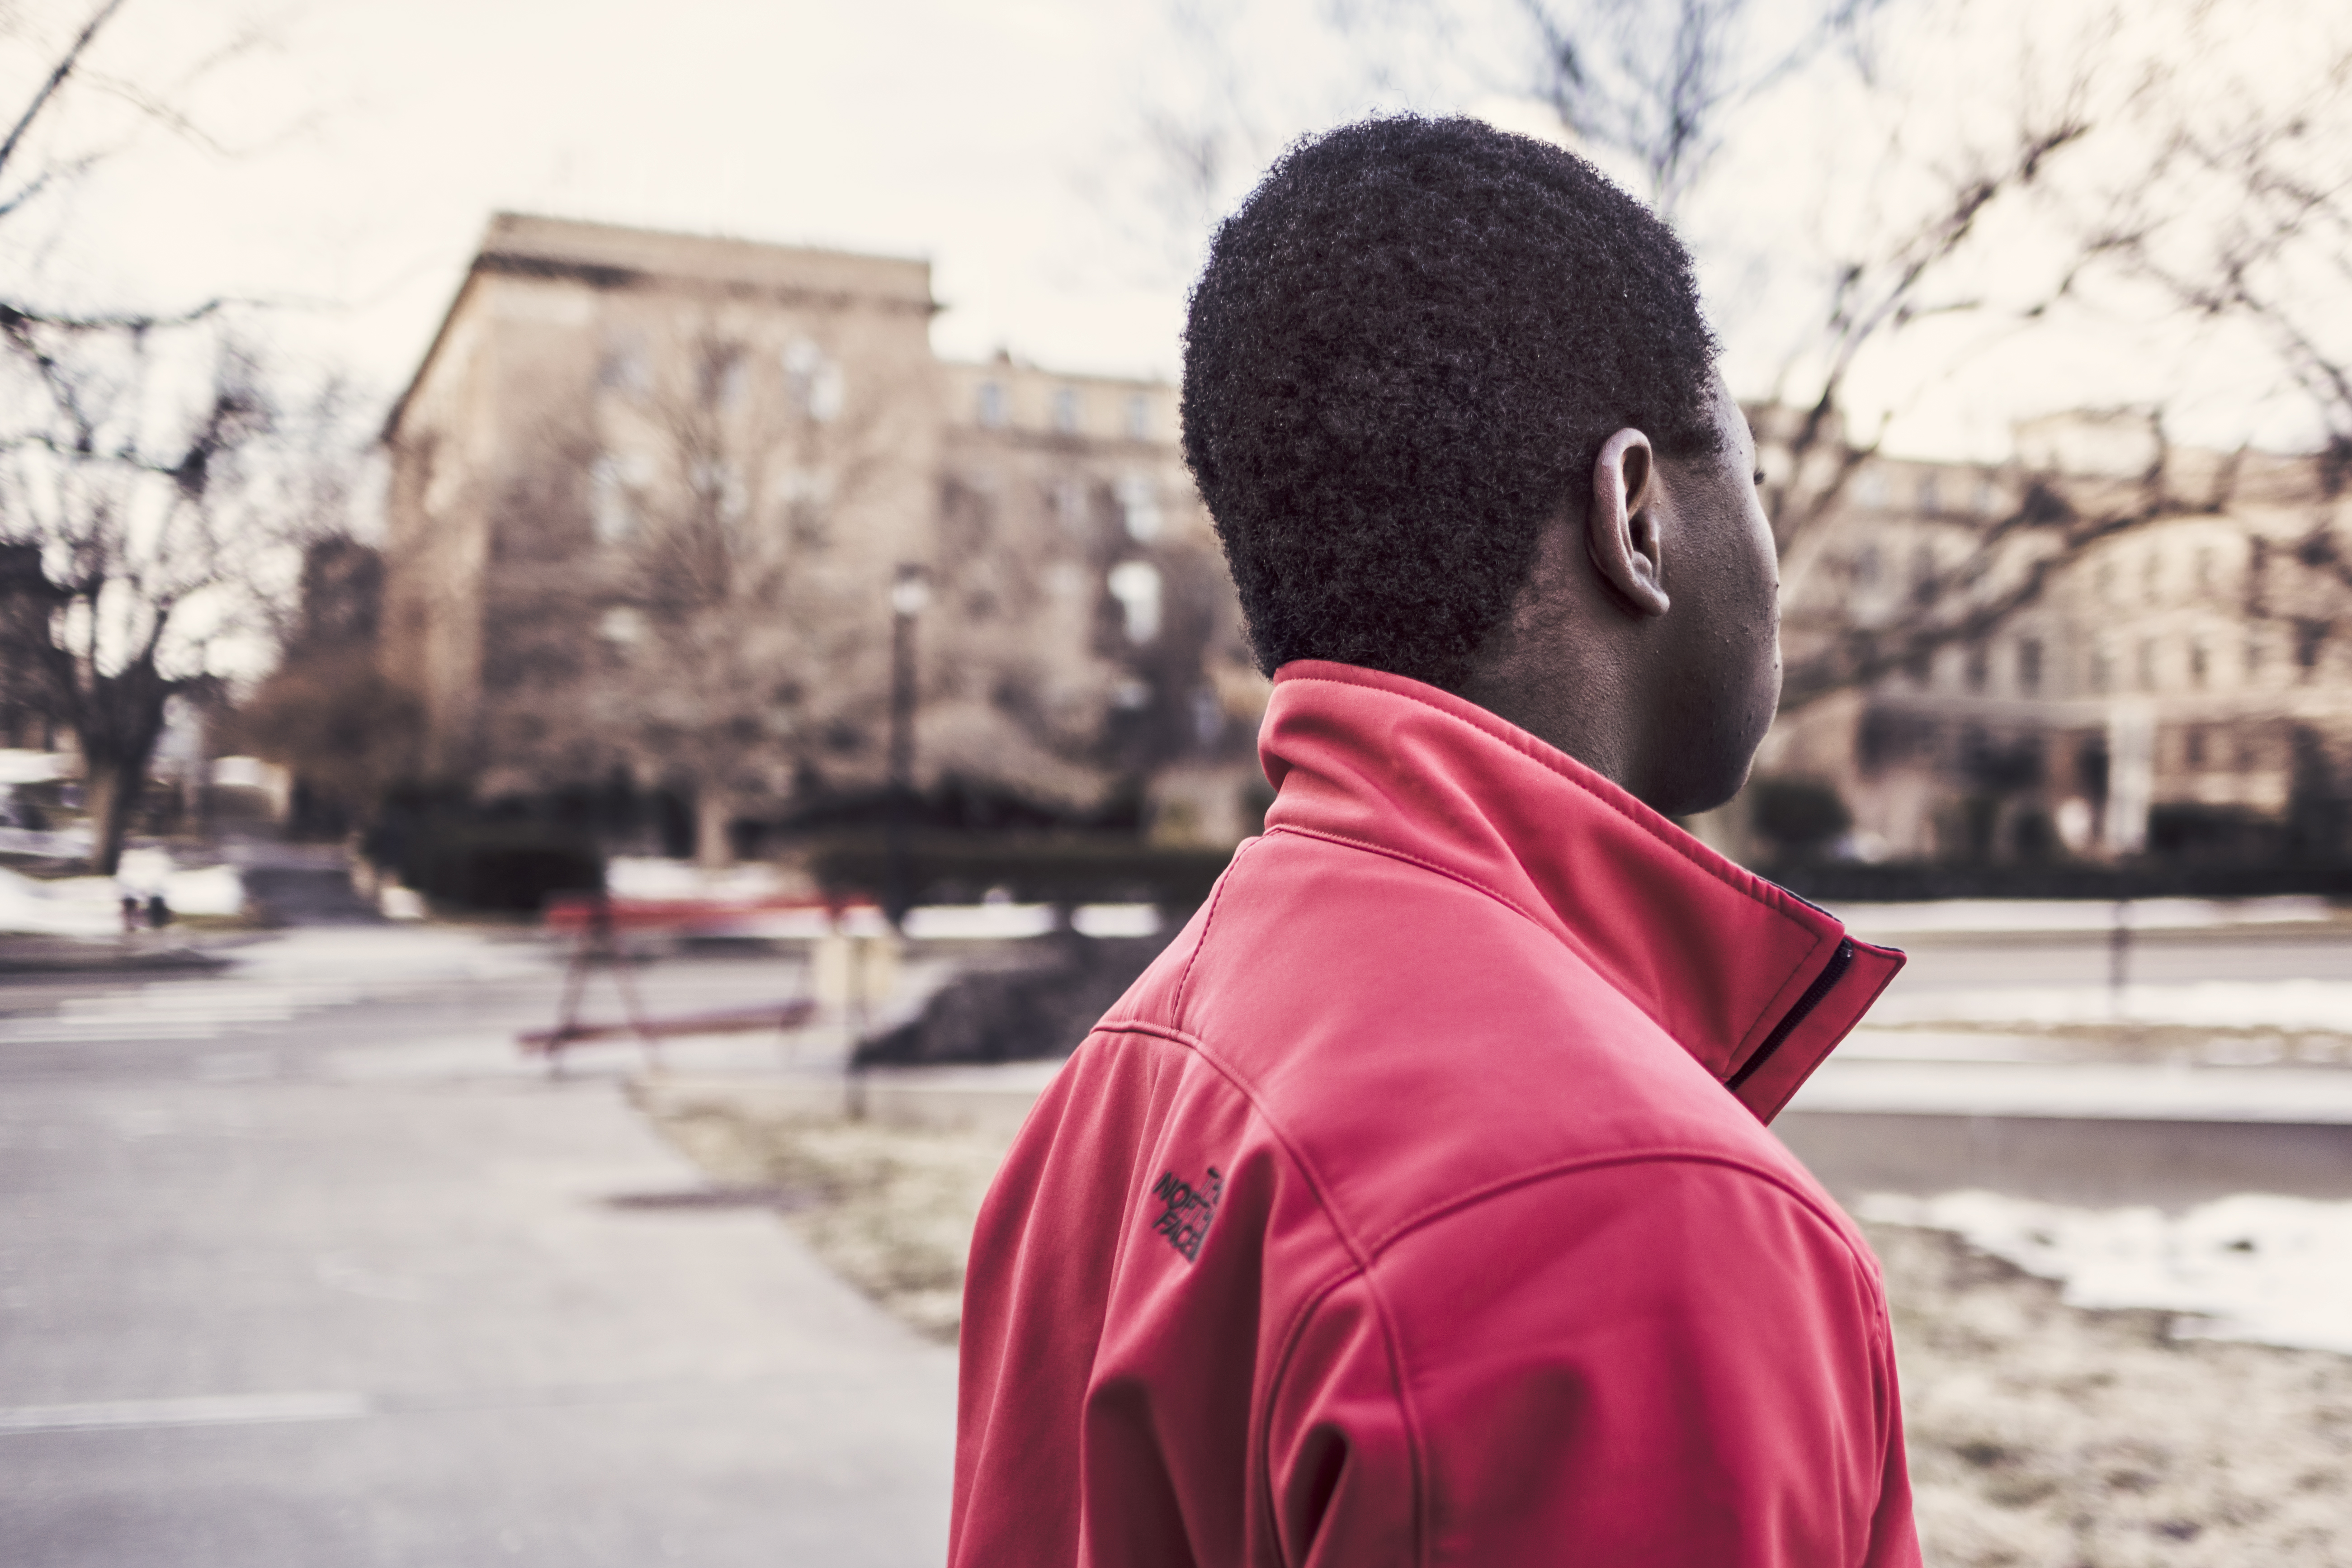 Guy red jacket